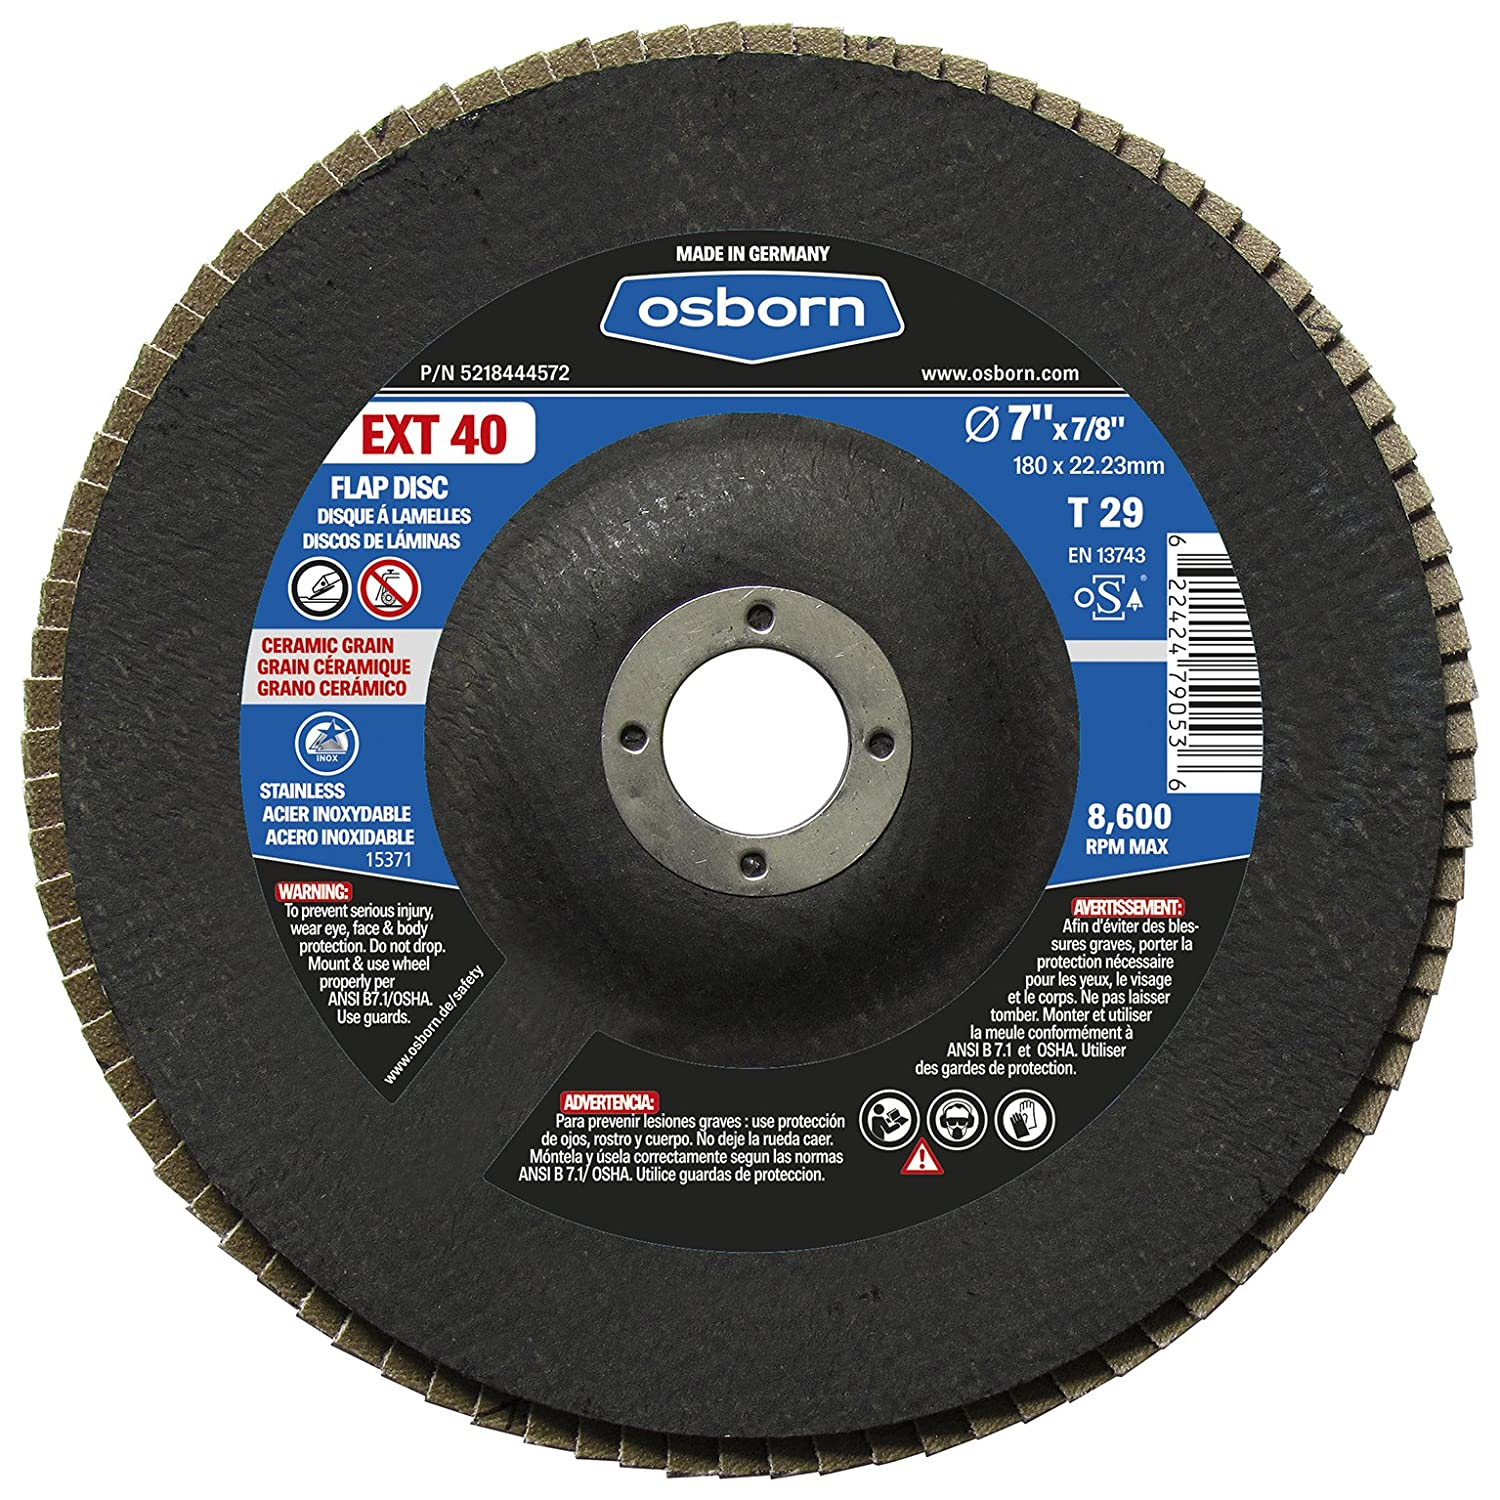 T29 7 Type Pack of 10 7 x 7//8 Pack of 10 Osborn 5218444572 29 Ceramic 40 Grit Flap Disc EXT 40 7 x 7//8 7 Type